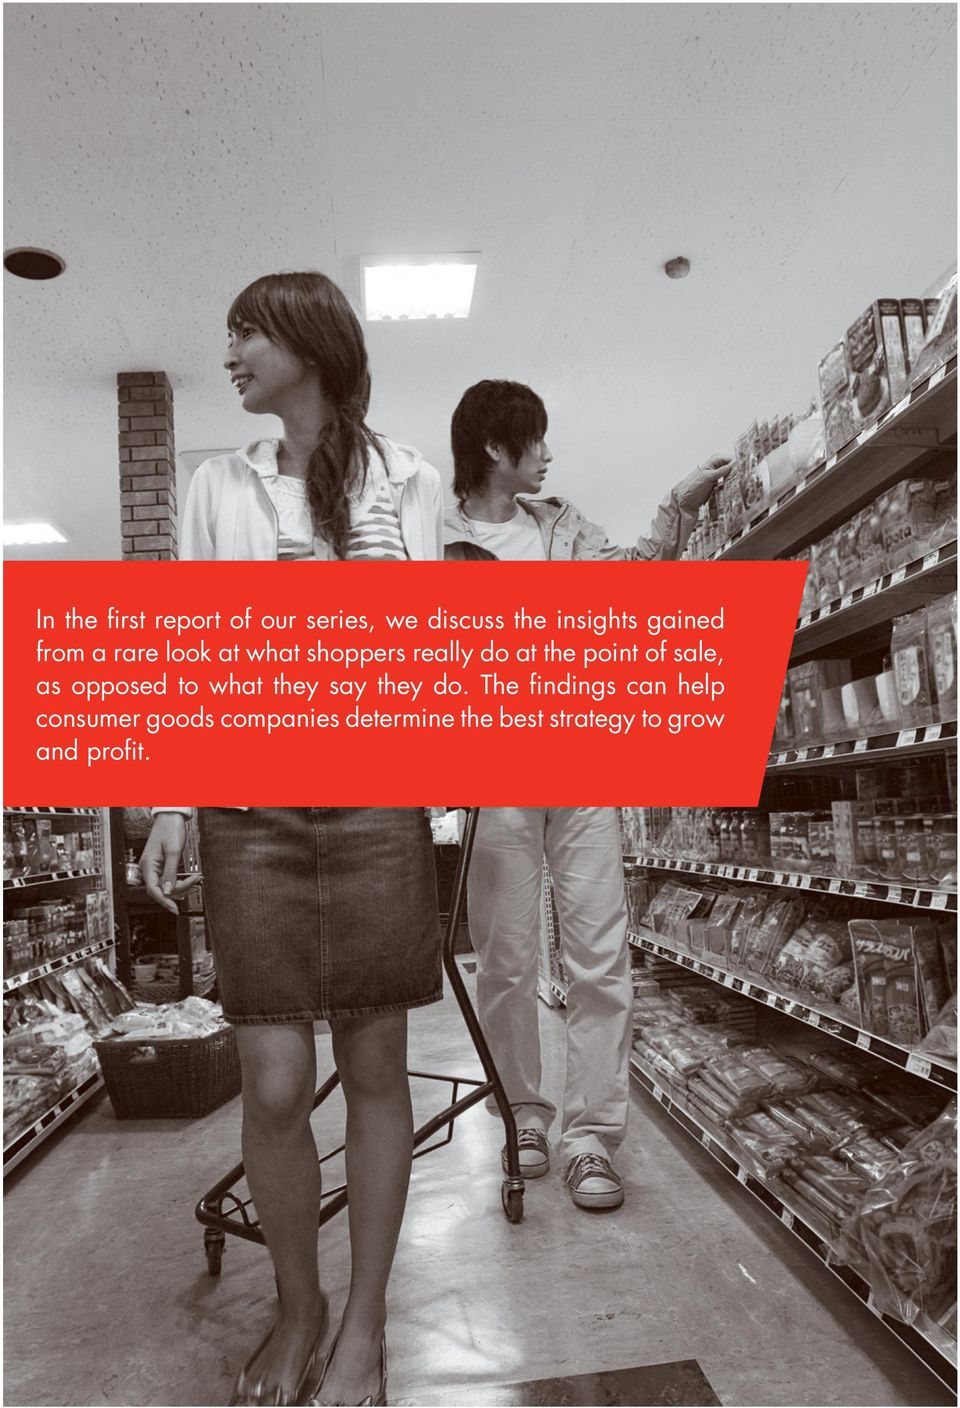 Success rests on understanding actual shopper behavior what they do at the point of sale as opposed to what they say they ll do in surveys.